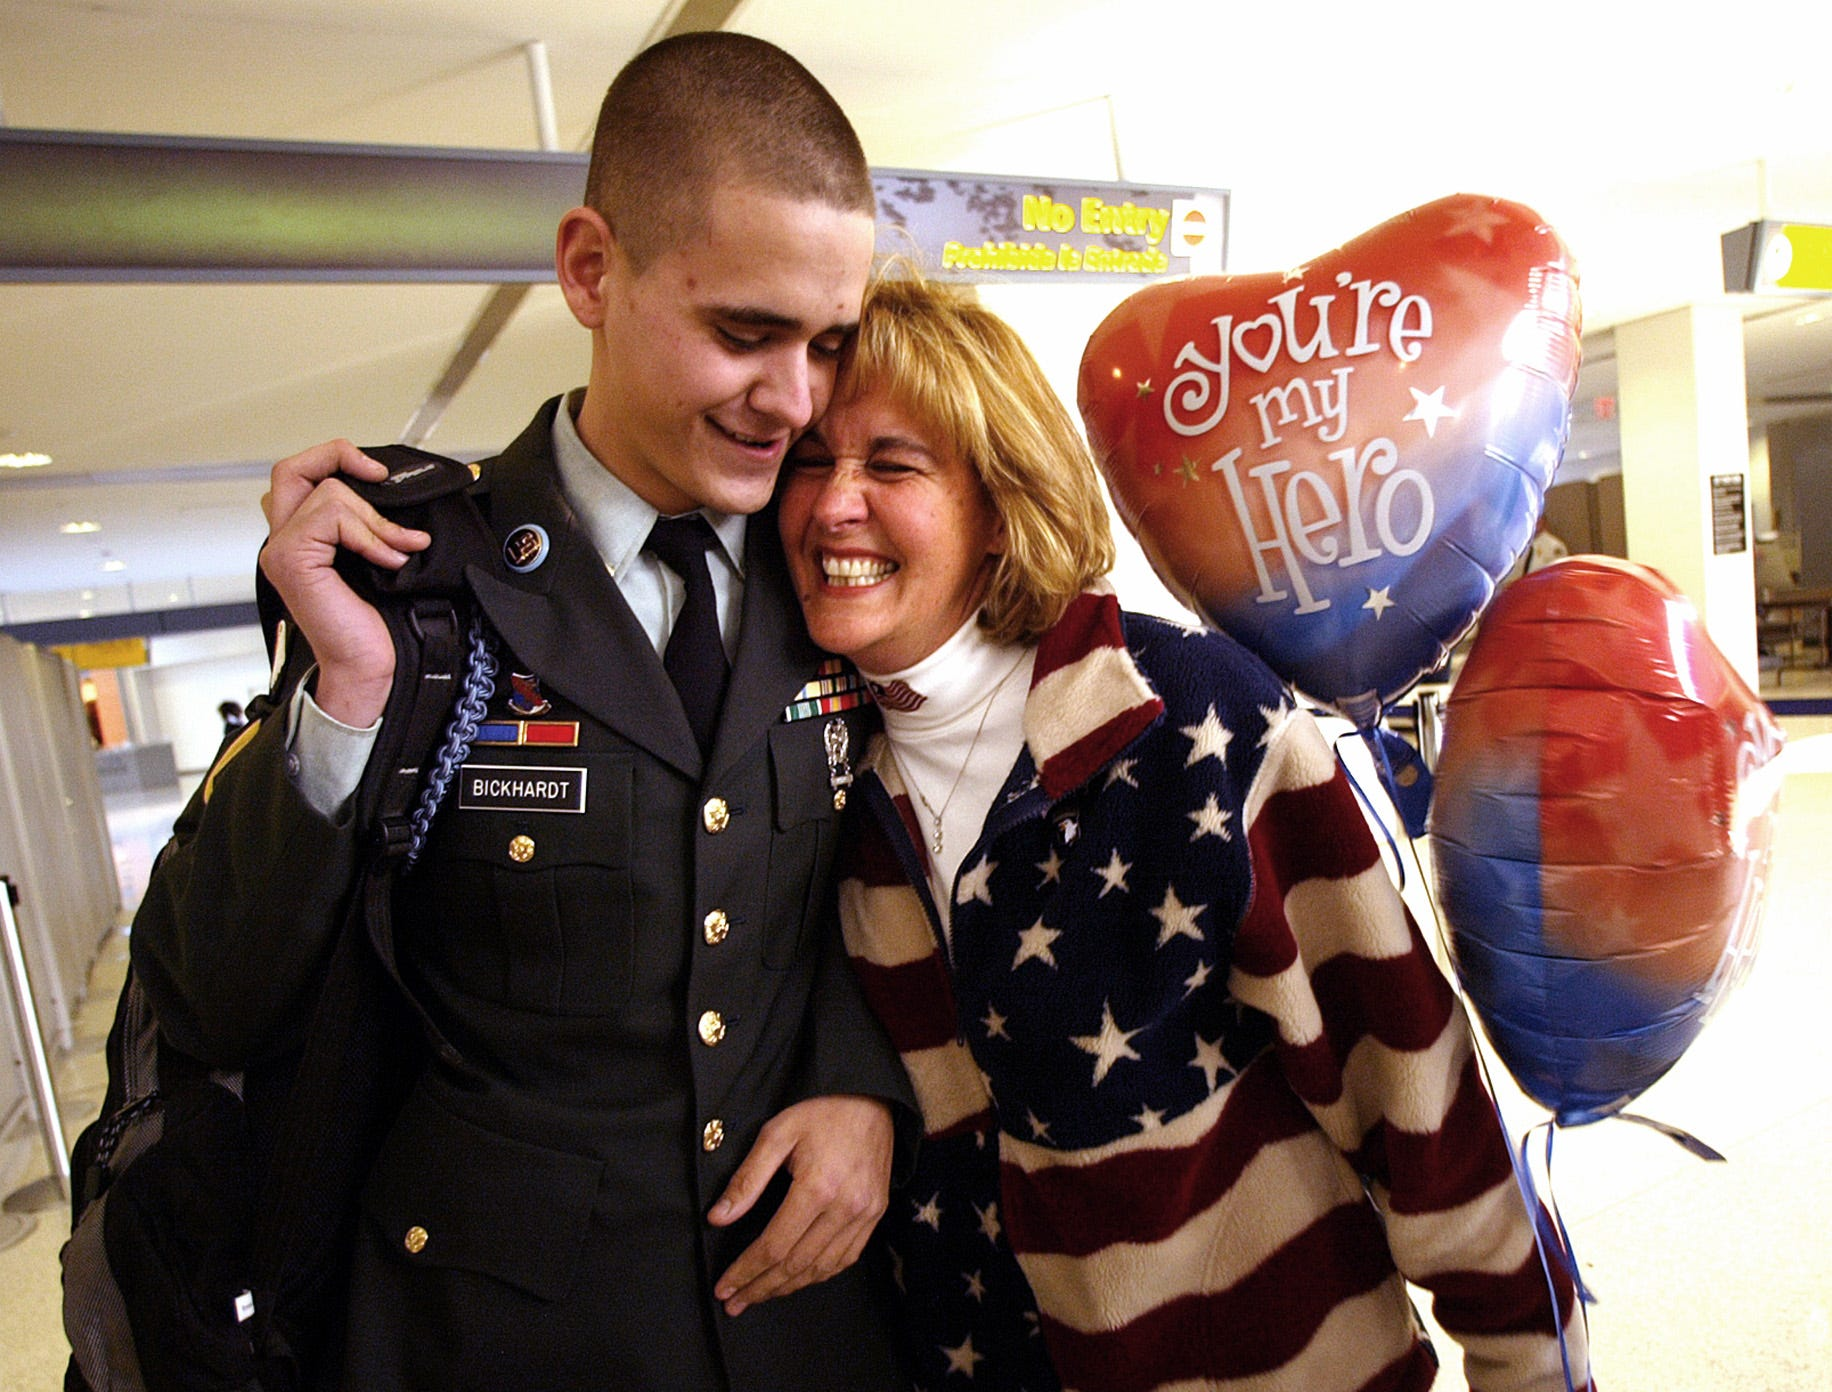 Newark--Nov. 27, 2003--PFC. Justin Bickhardt gets a huge hug from his Mom, Roberta Gaudioso as he  arrives at Newark Airport for approximately 24 hours of leave before heading back to Iraq.